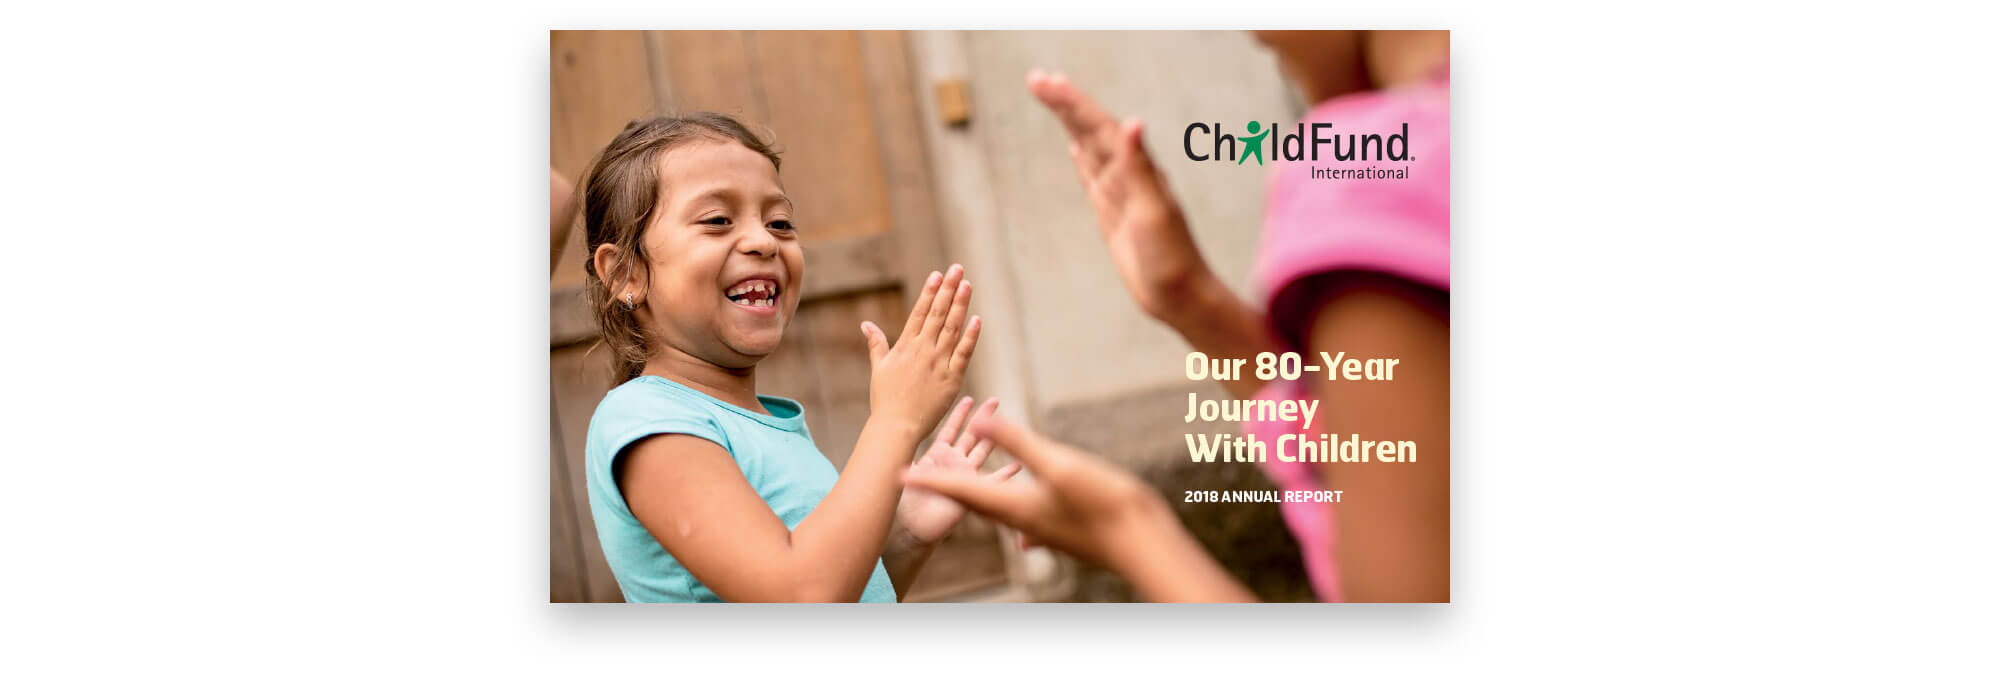 Annual Report cover Our 80-Year Journey with Children